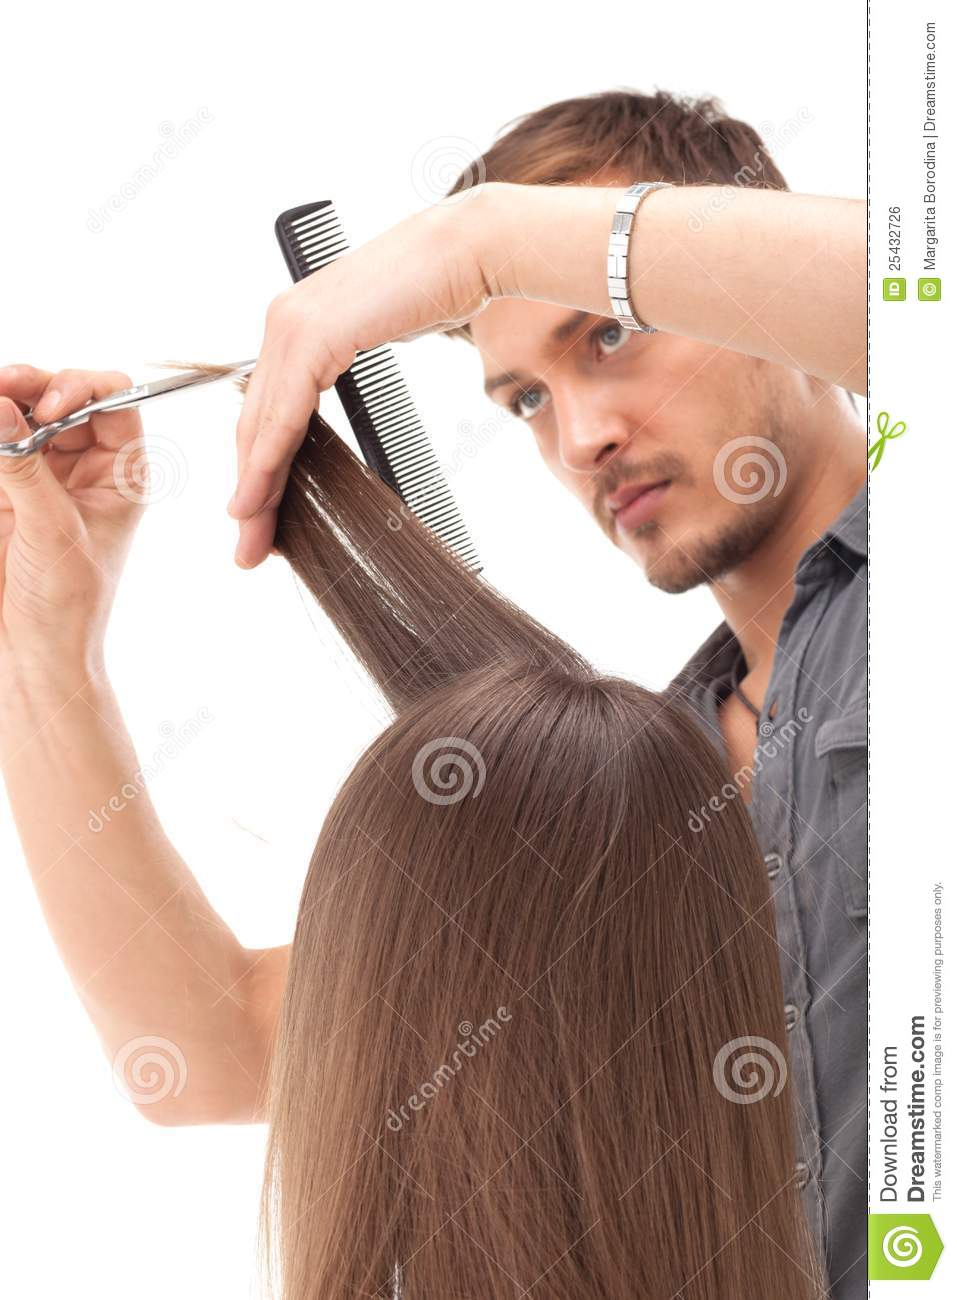 Professional Hairdresser : Professional Hairdresser With Long Hair Model Royalty Free Stock Image ...